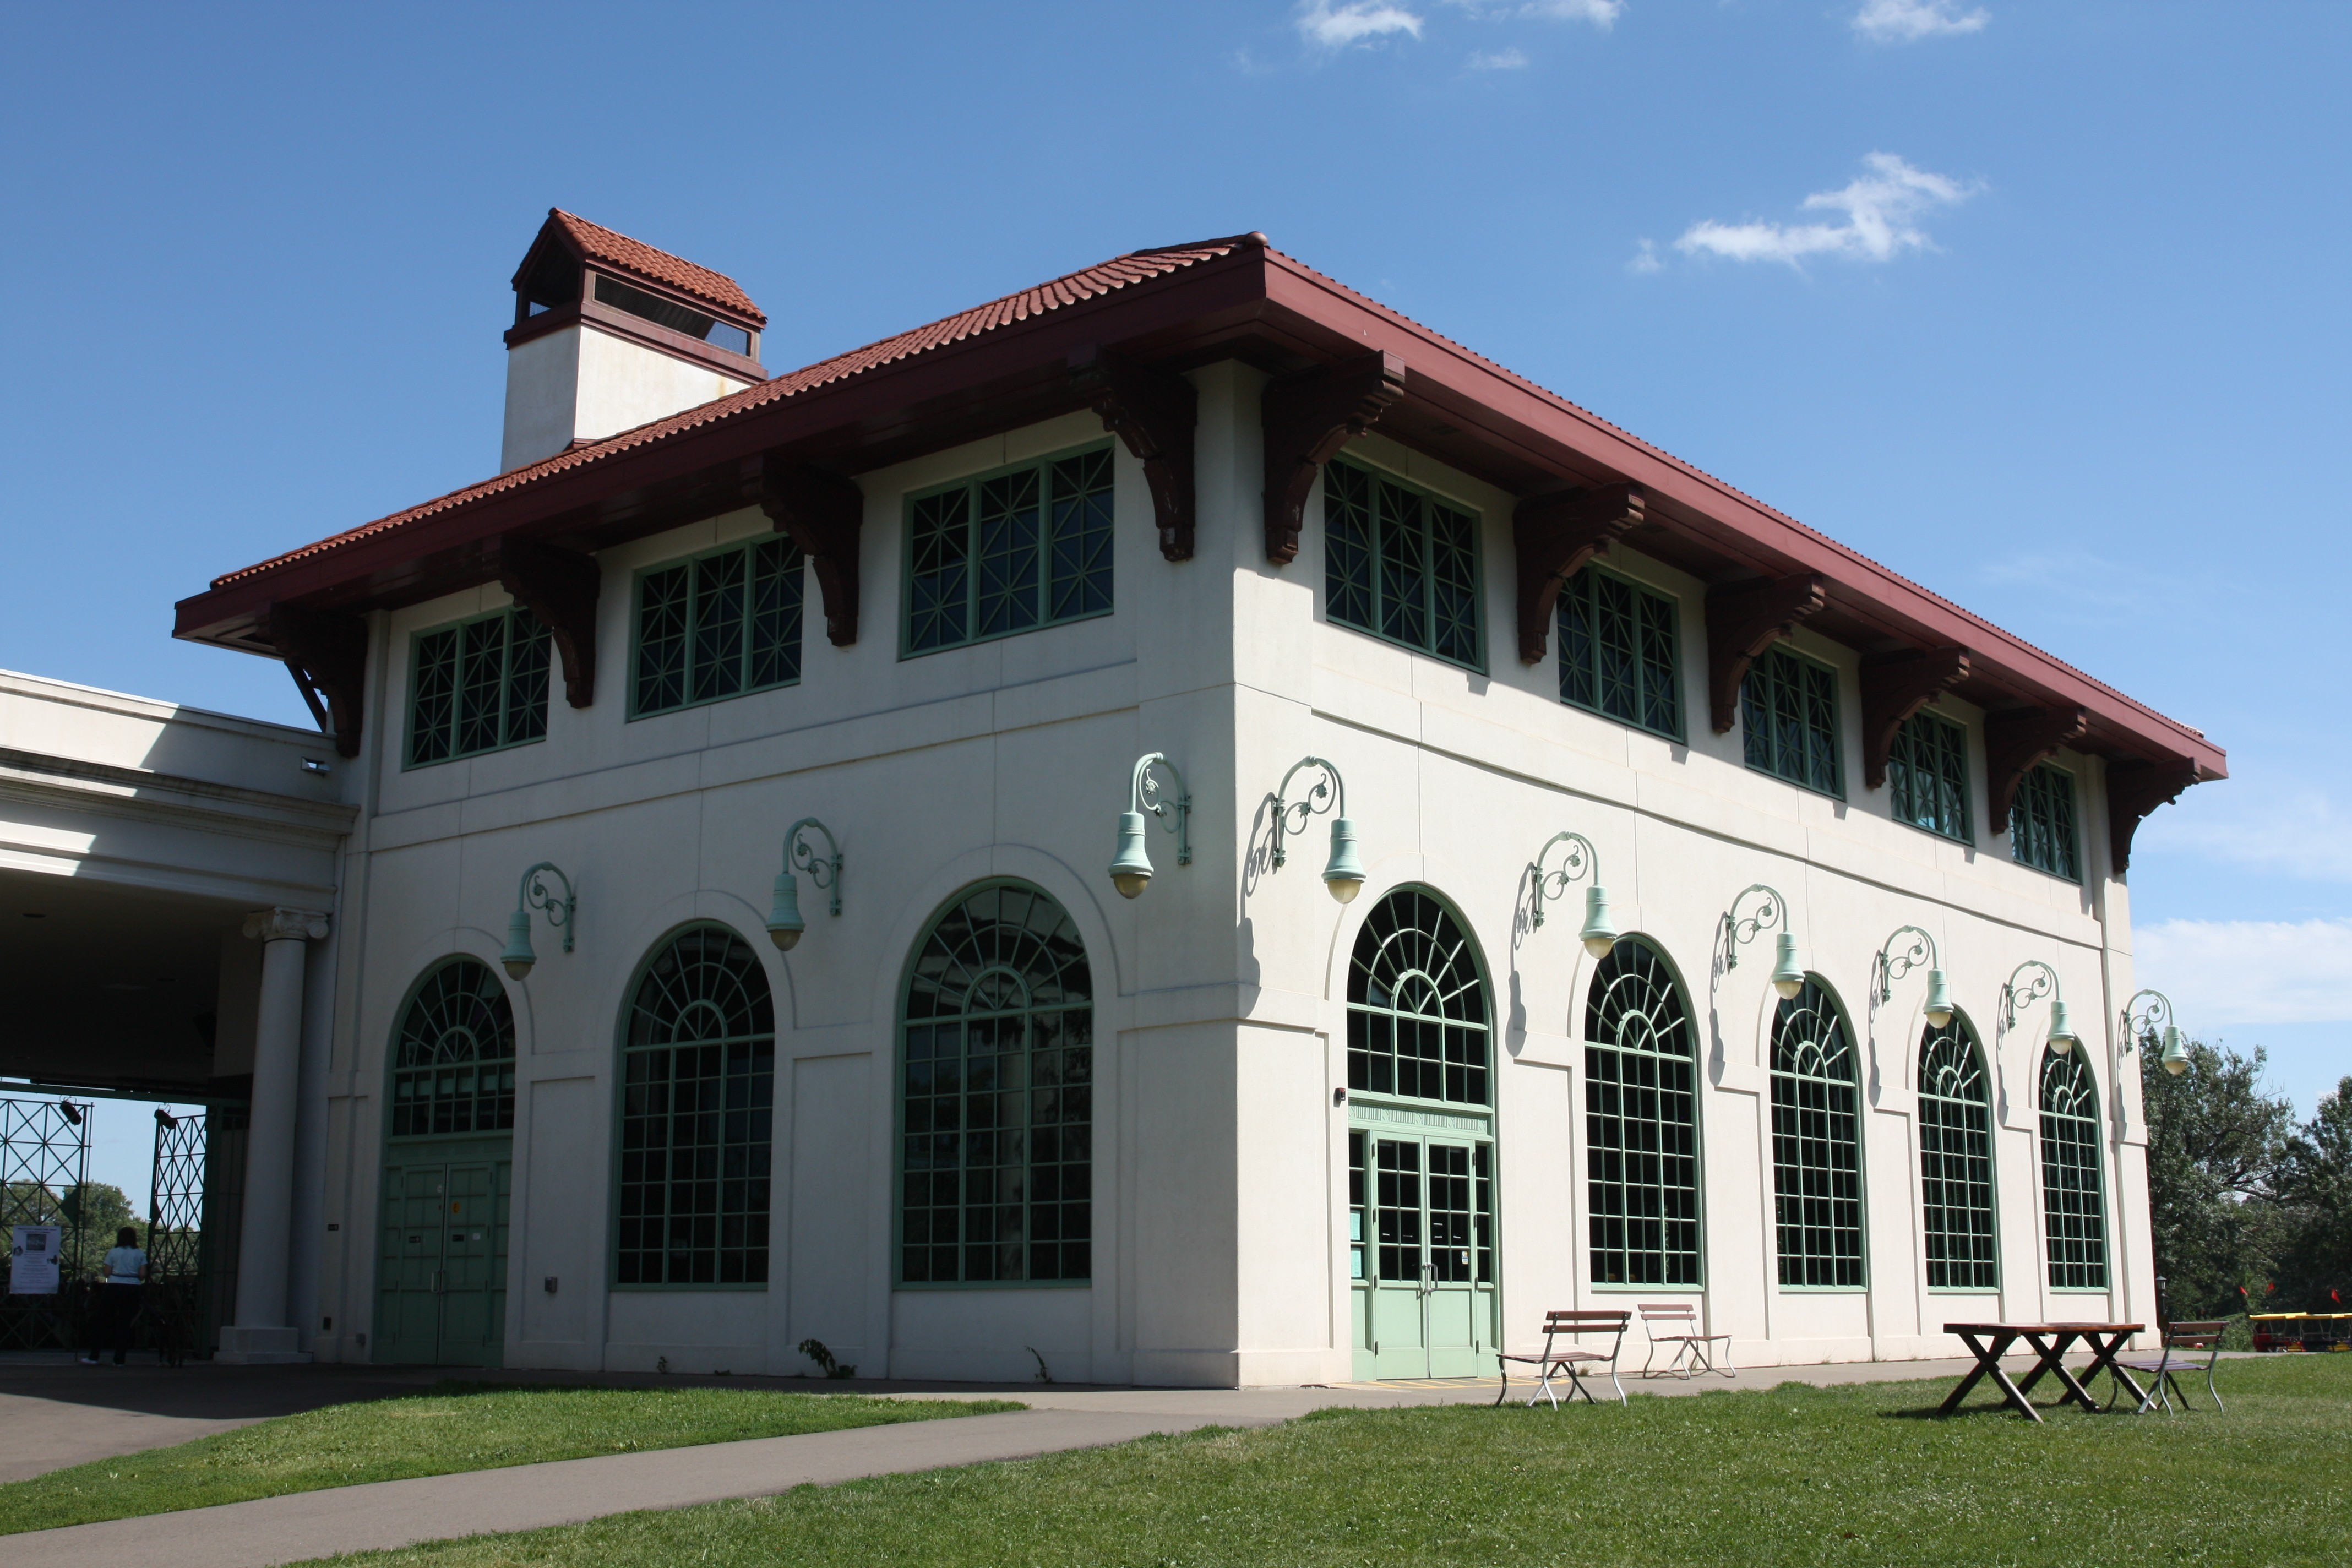 The Spring Cafe occupies the main floor of the Pavilion, and the second floor can be rented for weddings and other events.